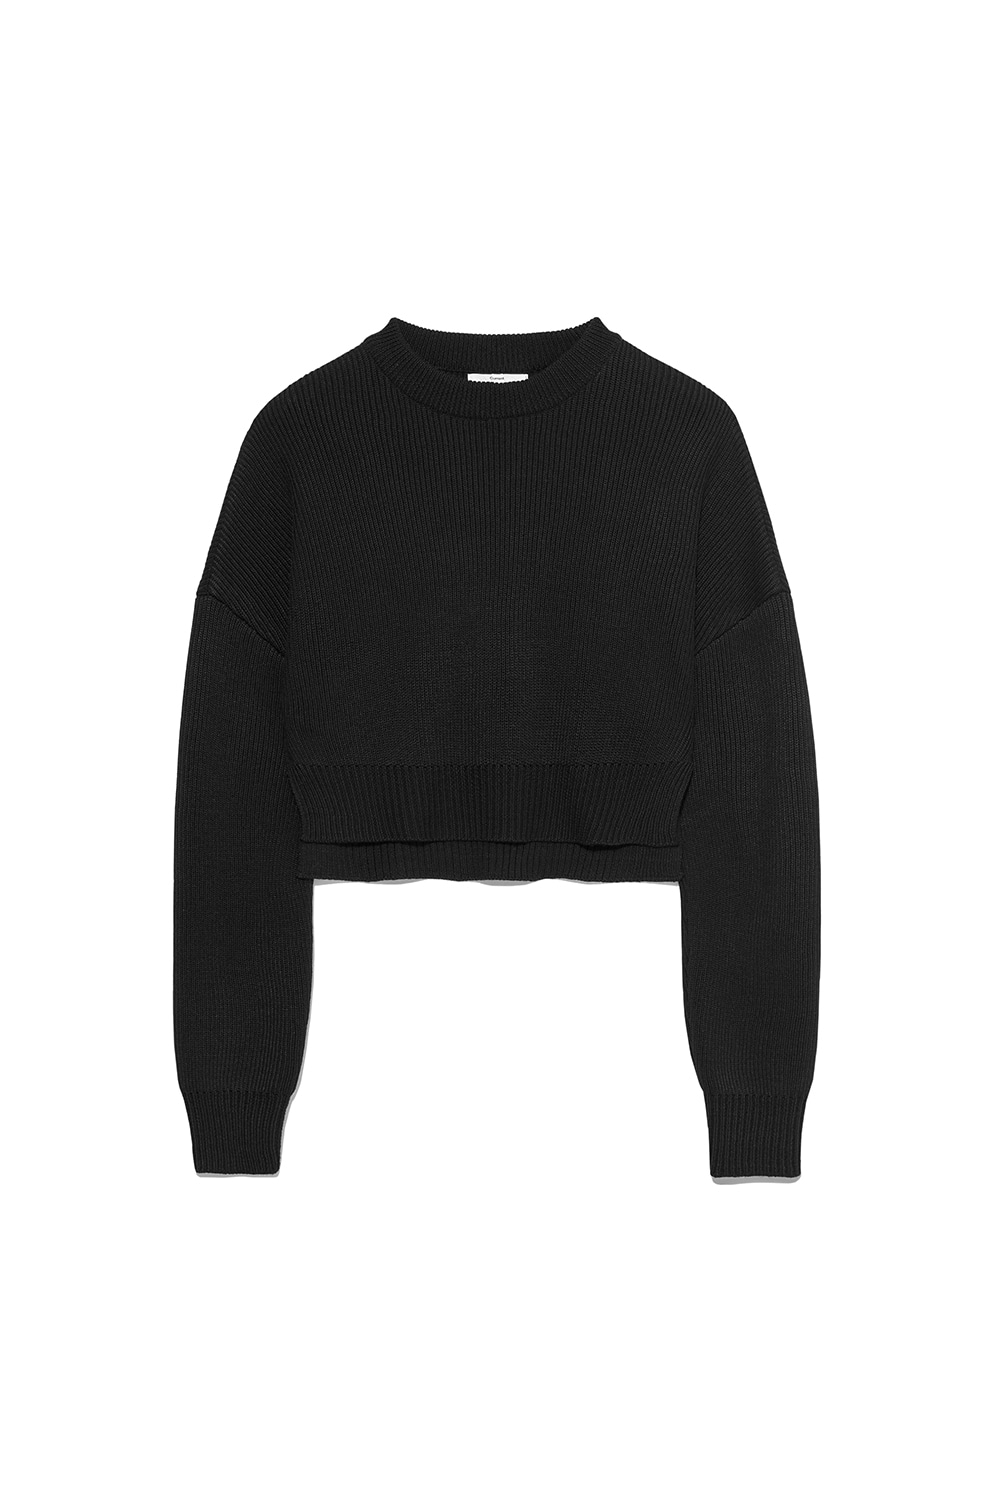 Slit Knit Crewneck Women [Black]